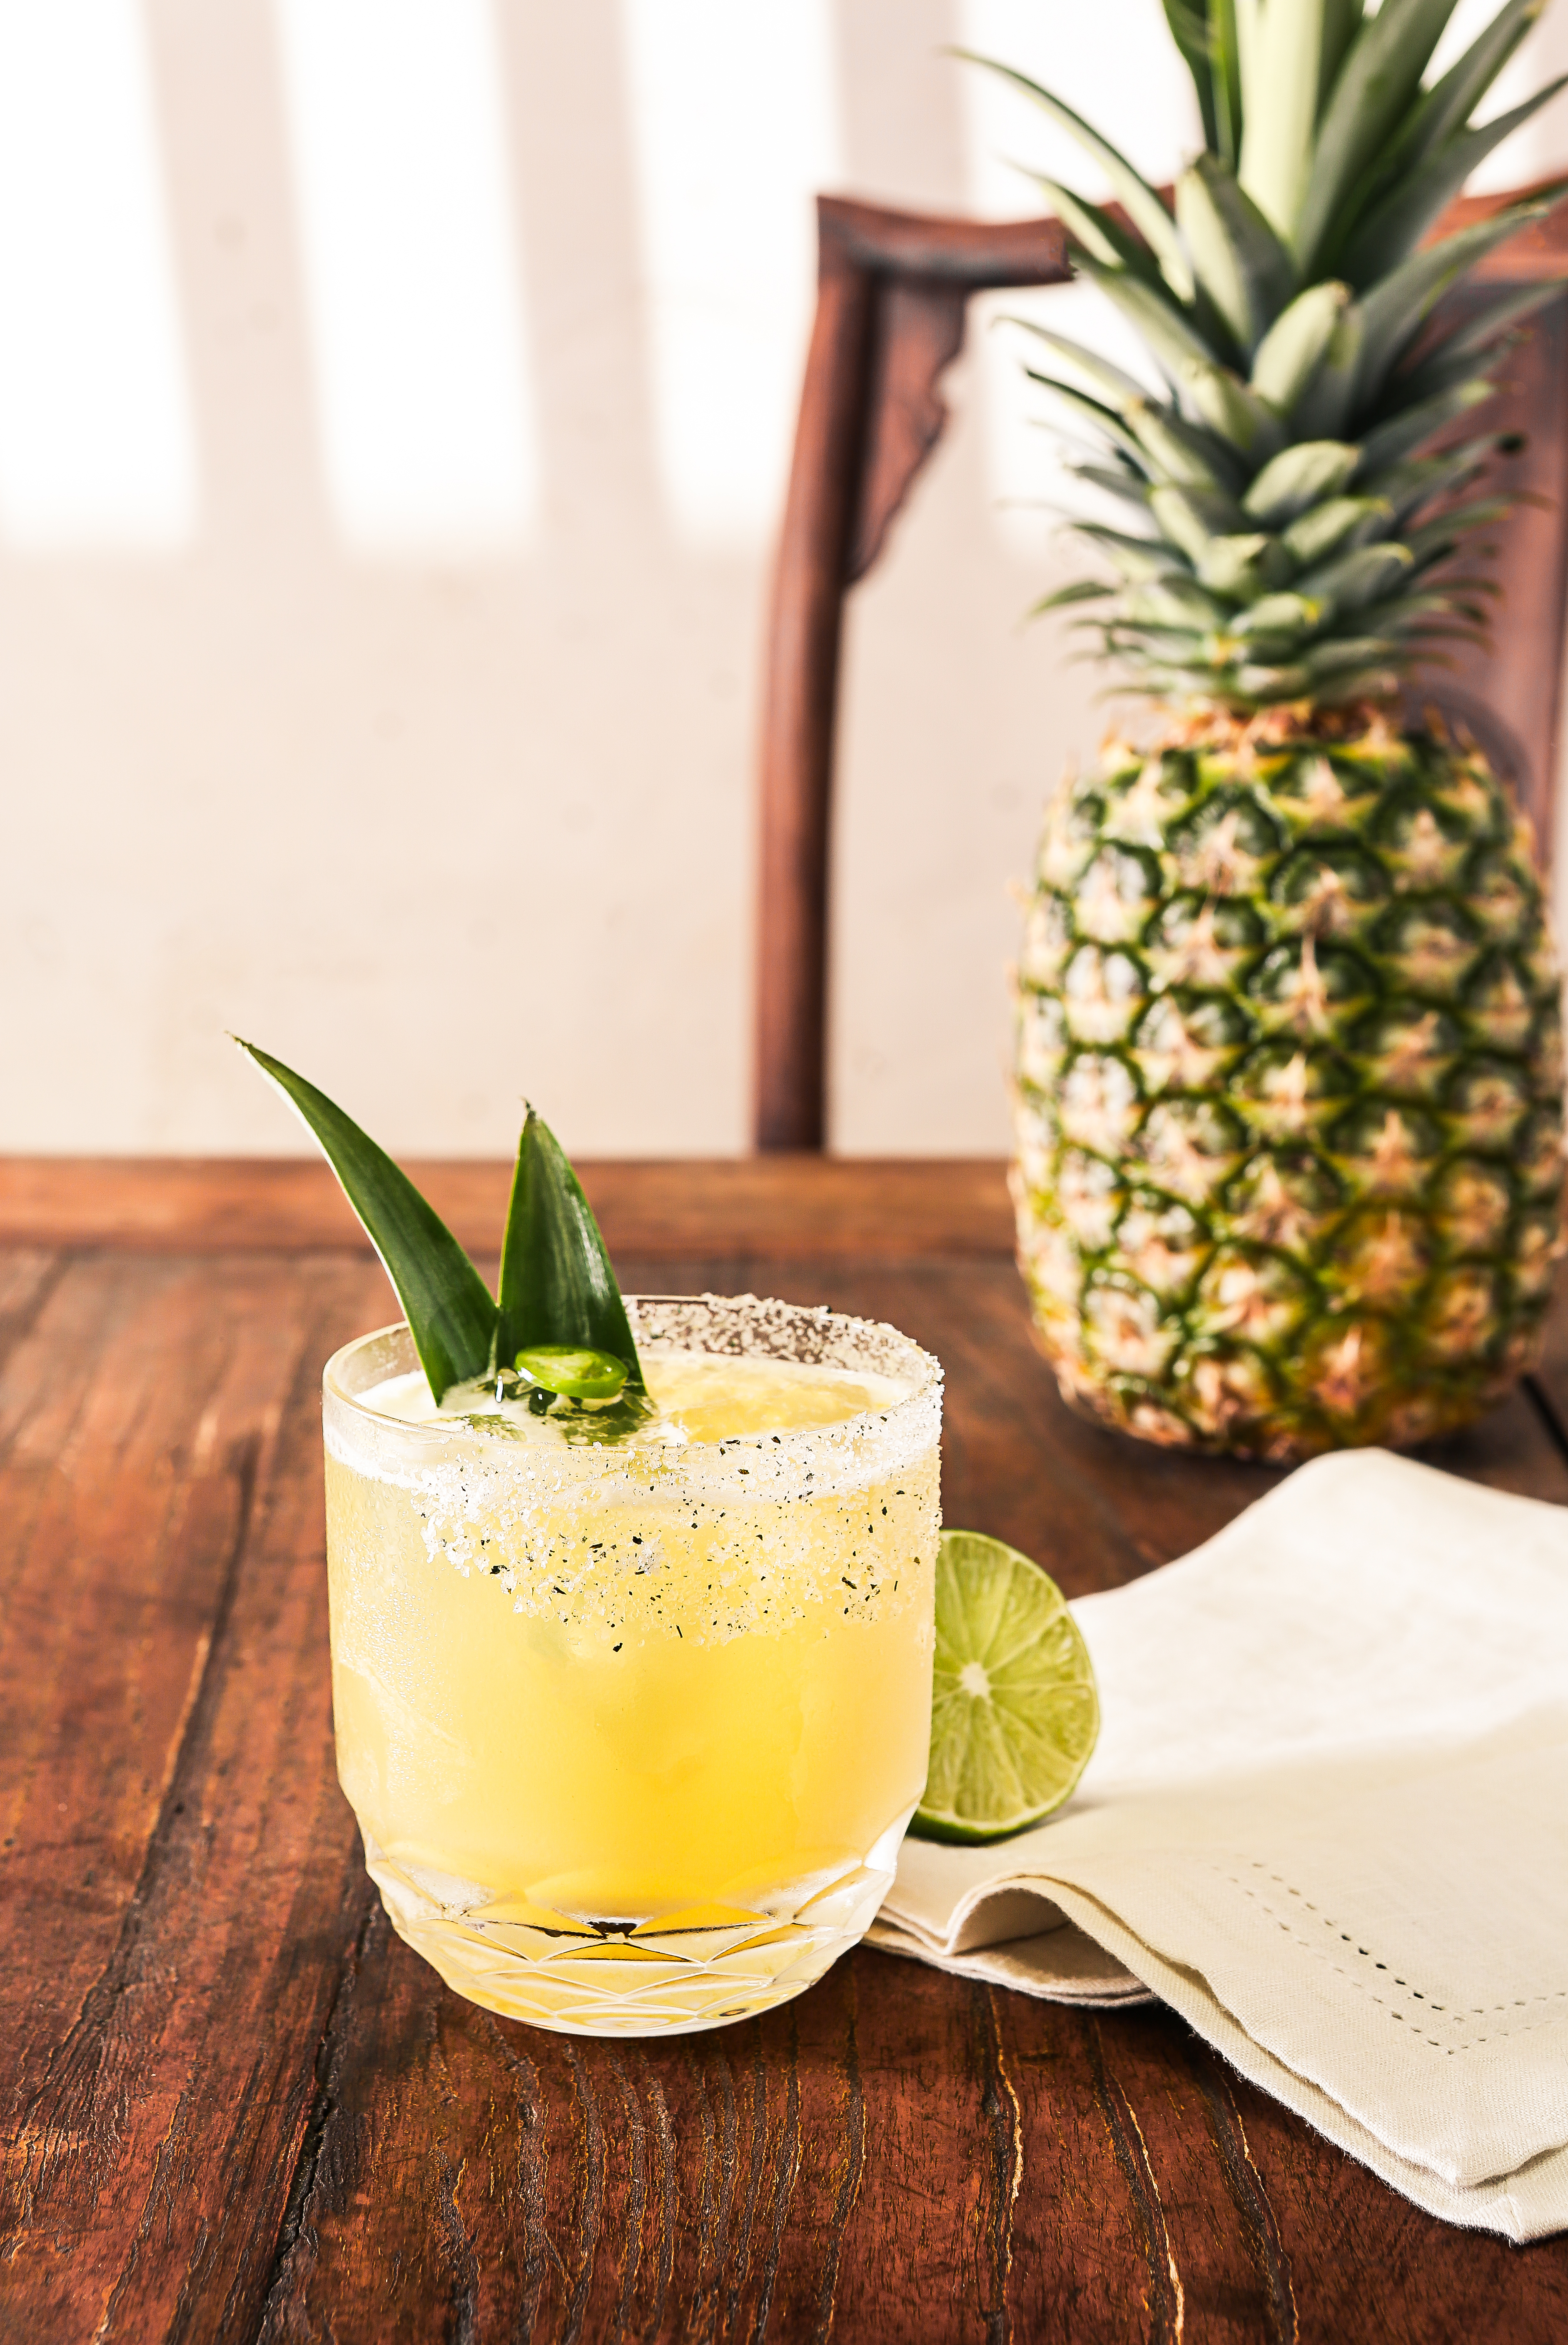 Celebrate Cinco de Mayo with Creative Tequila Cocktails